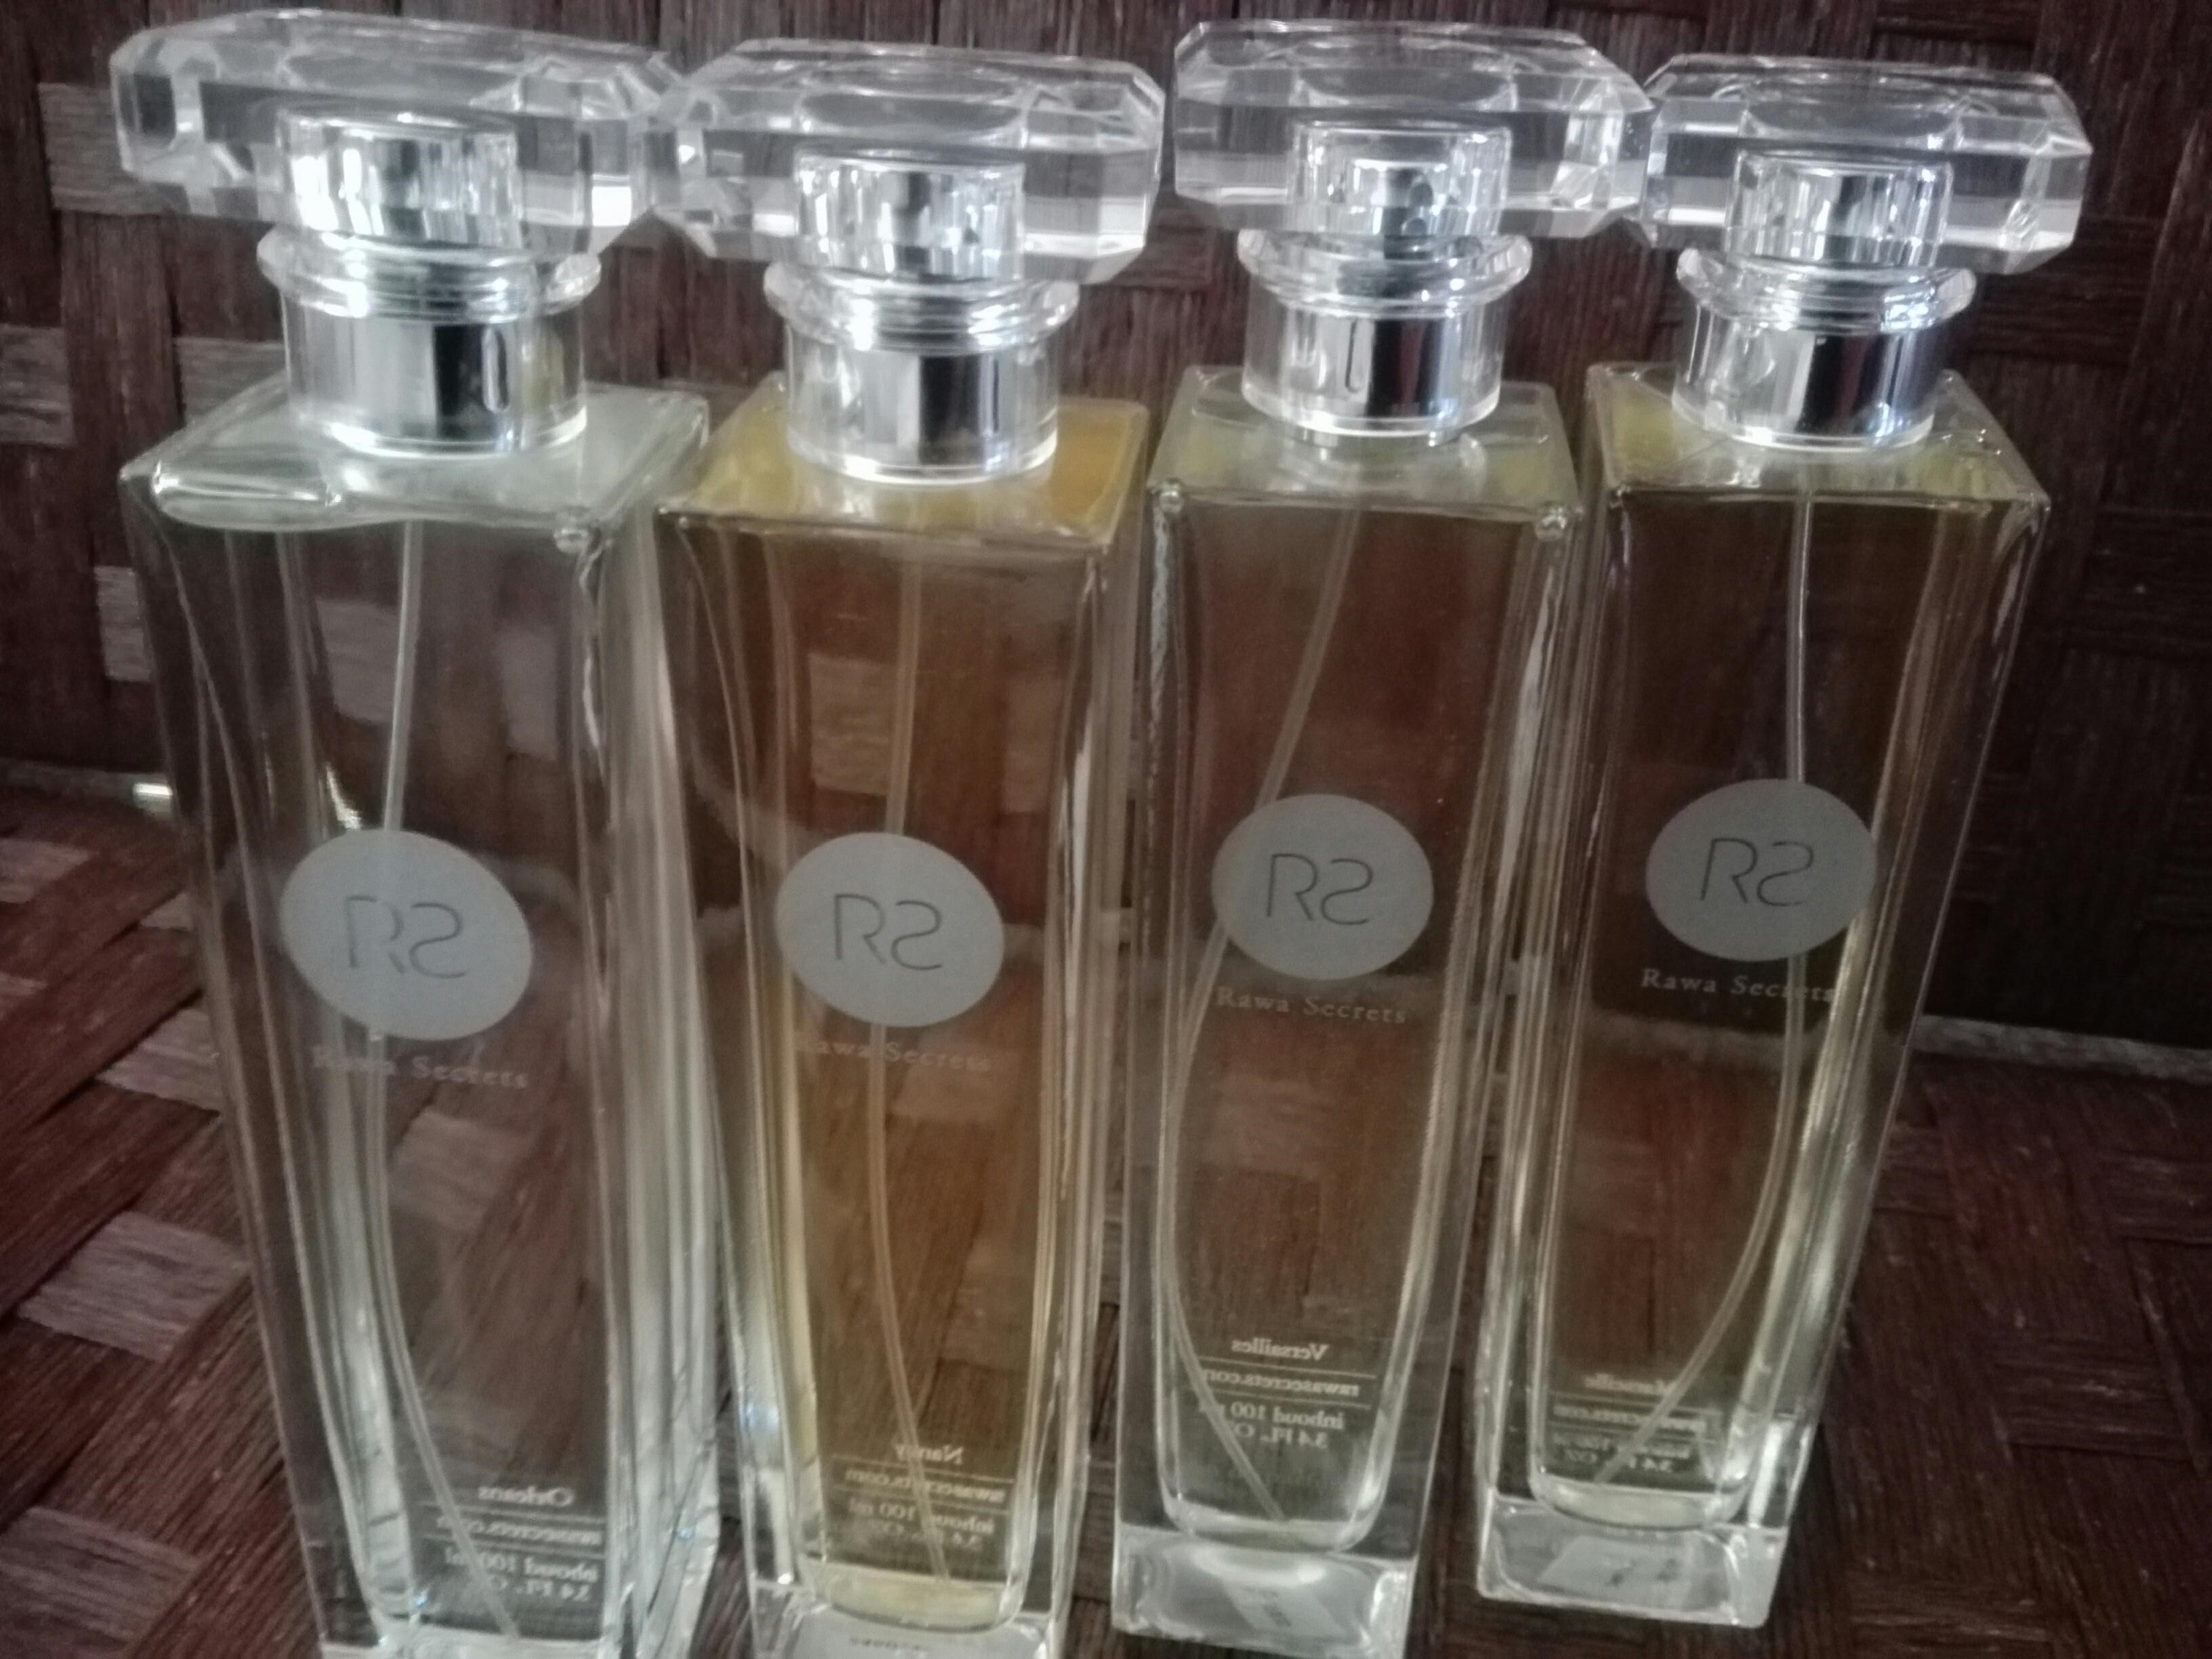 rawa-secret-dames-parfums-foto